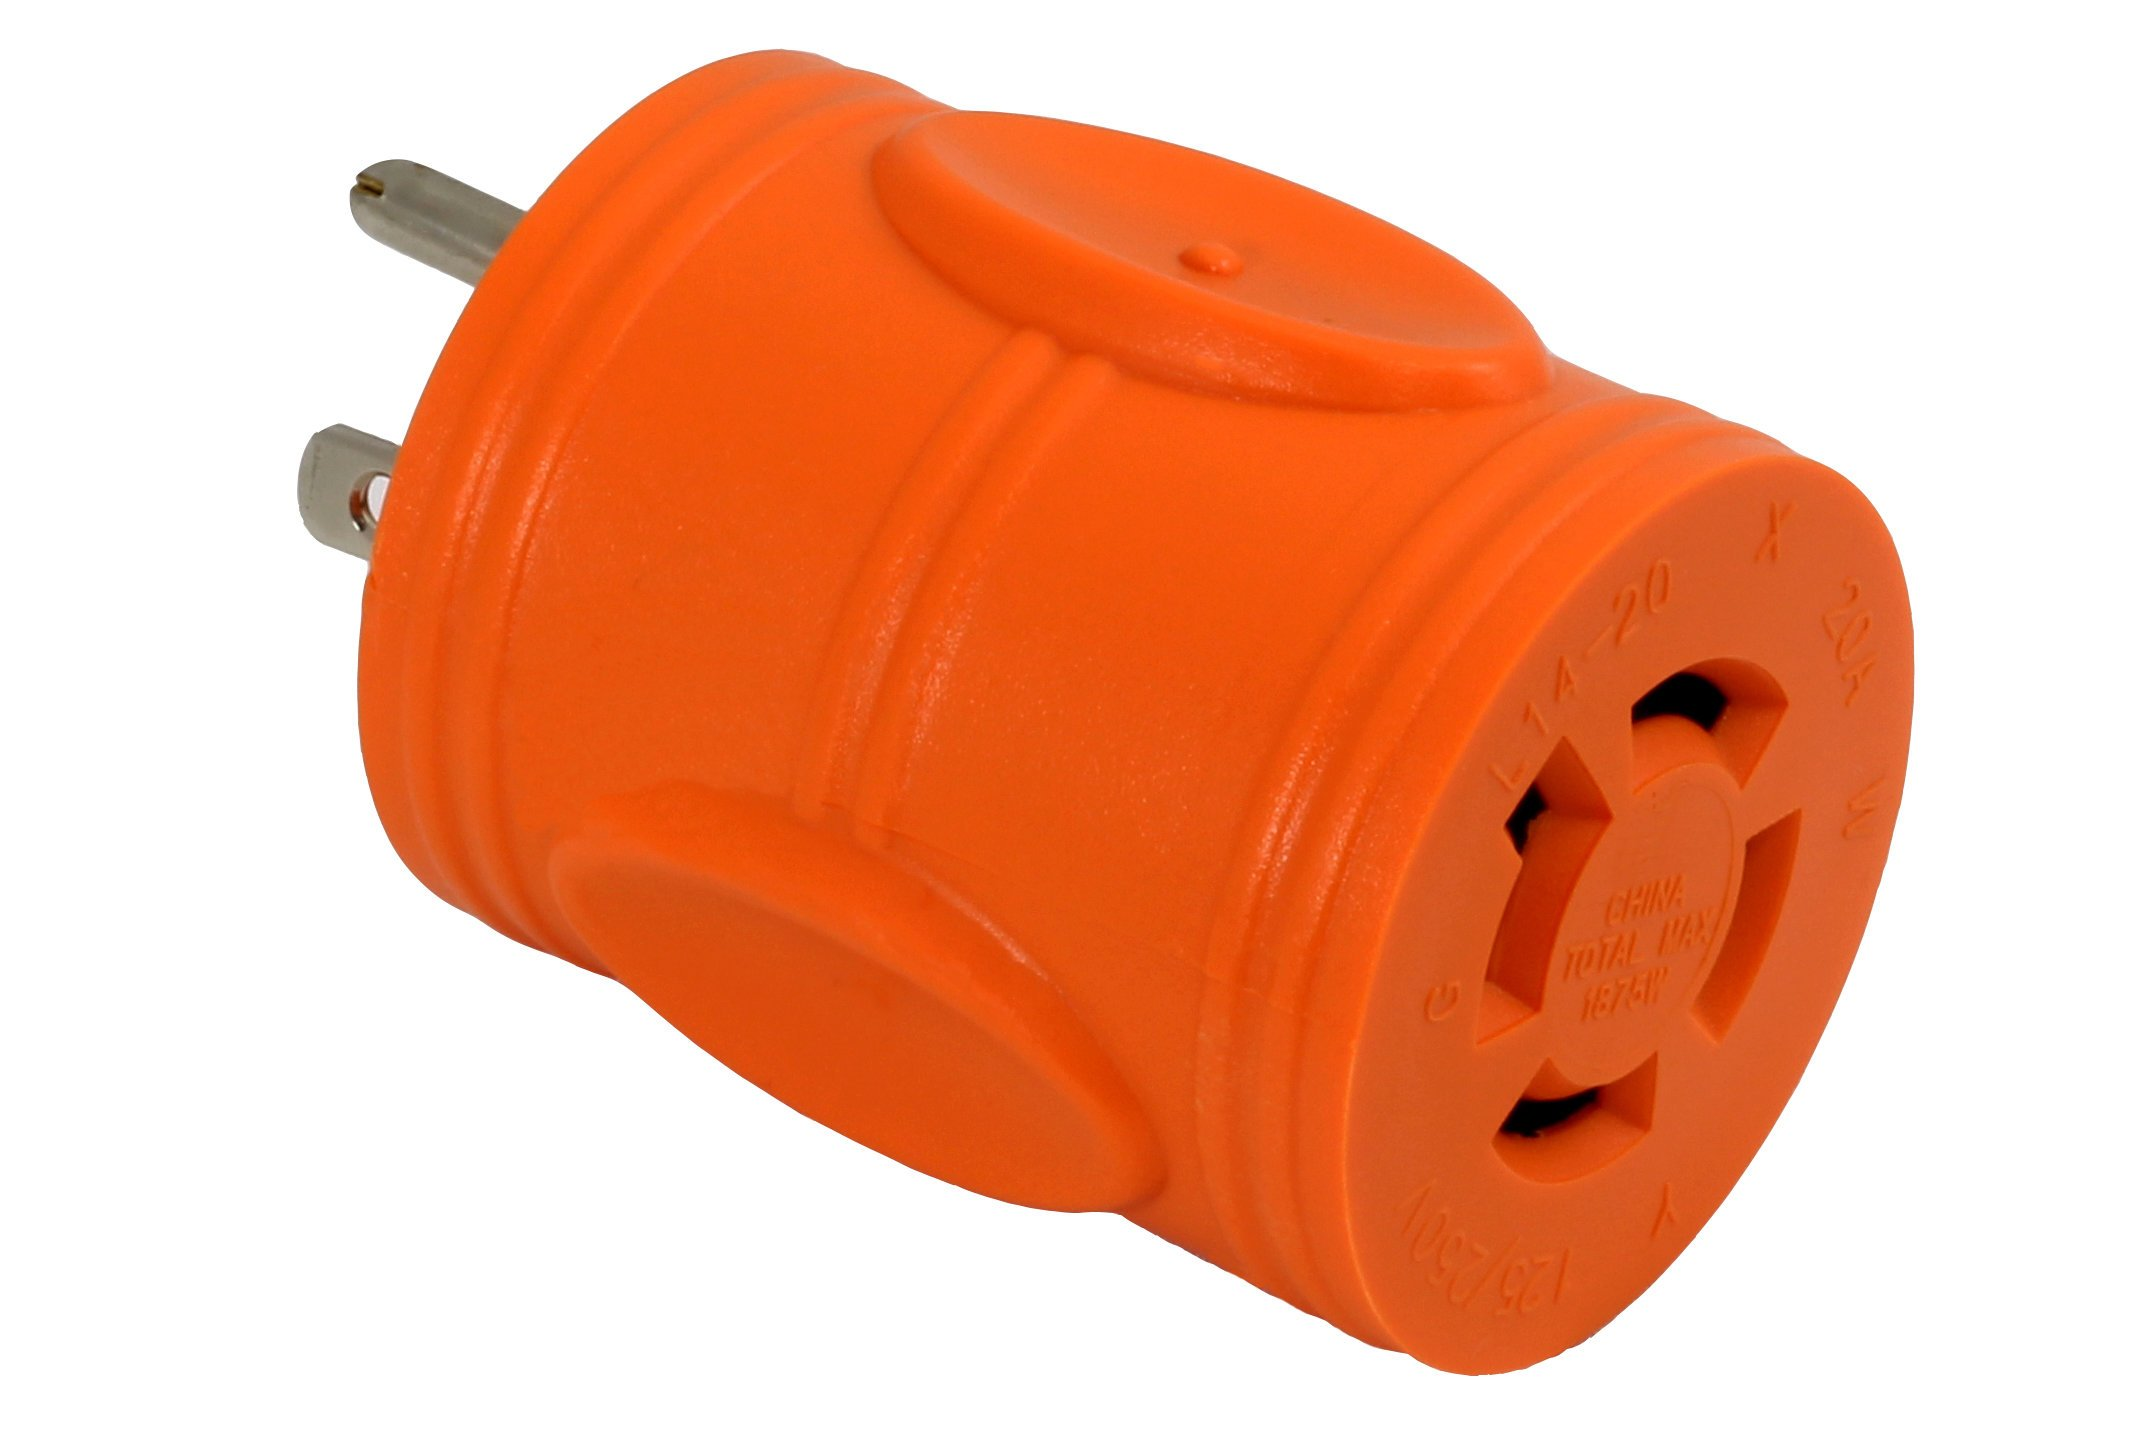 AC WORKS [AD515L1420] 15Amp Household Plug NEMA 5-15P to Generator 4 Prong 20Amp L14-20R (Two hots bridged)